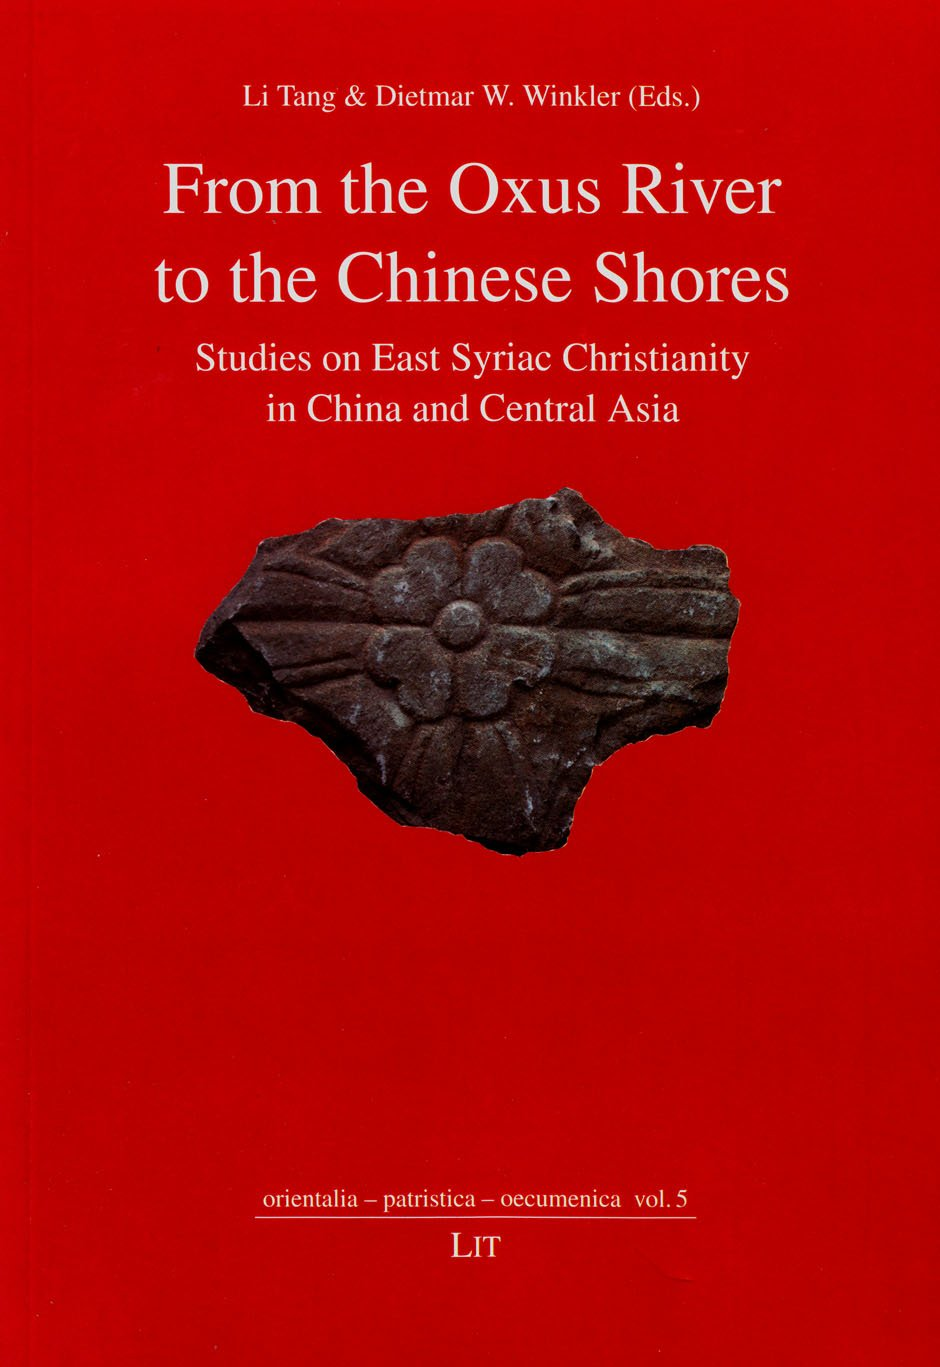 From the Oxus River to the Chinese Shores: Studies on East Syriac  Christianity in China and Central Asia (orientalia - patristica -  oecumenica): Tang, Li, Winkler, Dietmar W: 9783643903297: Amazon.com: Books